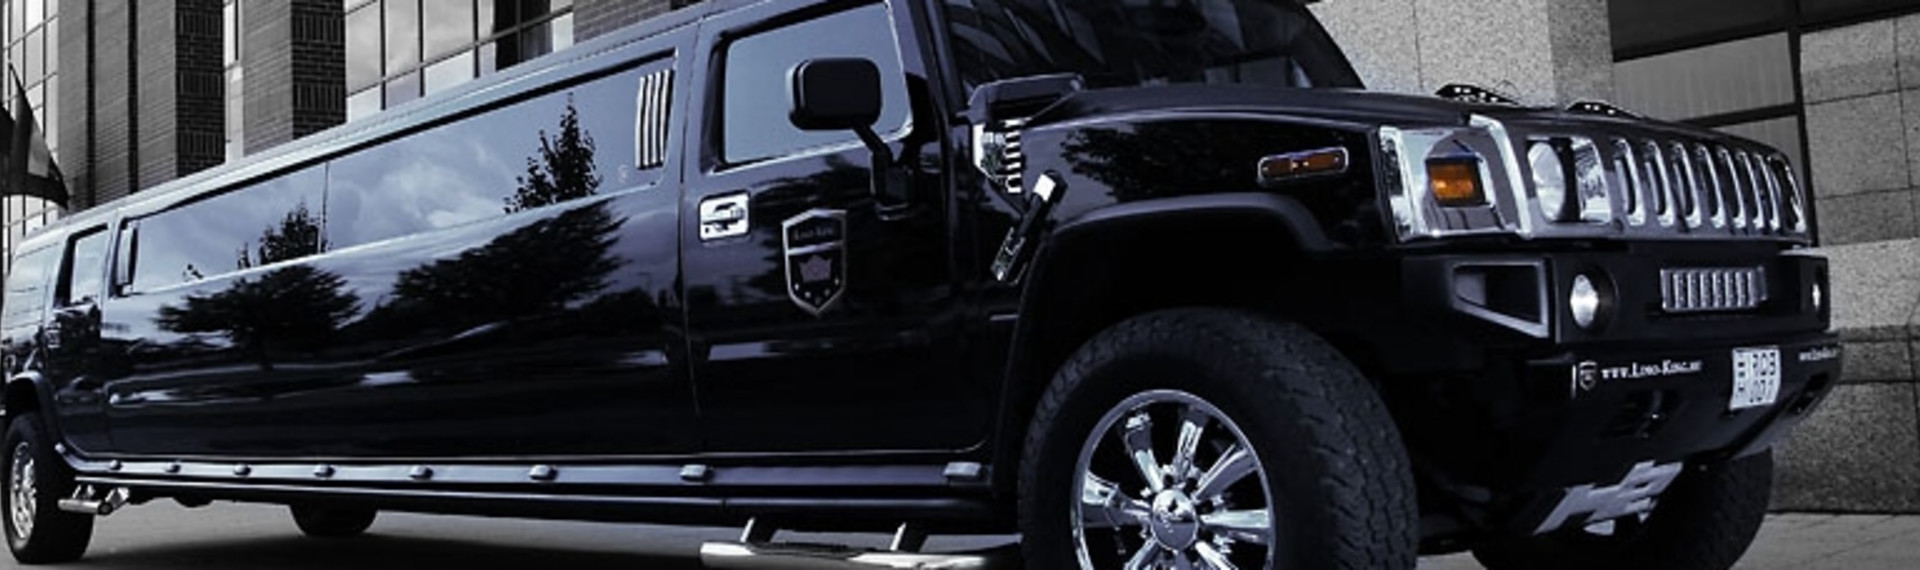 Hummer Limo in Barcelona | Pissup